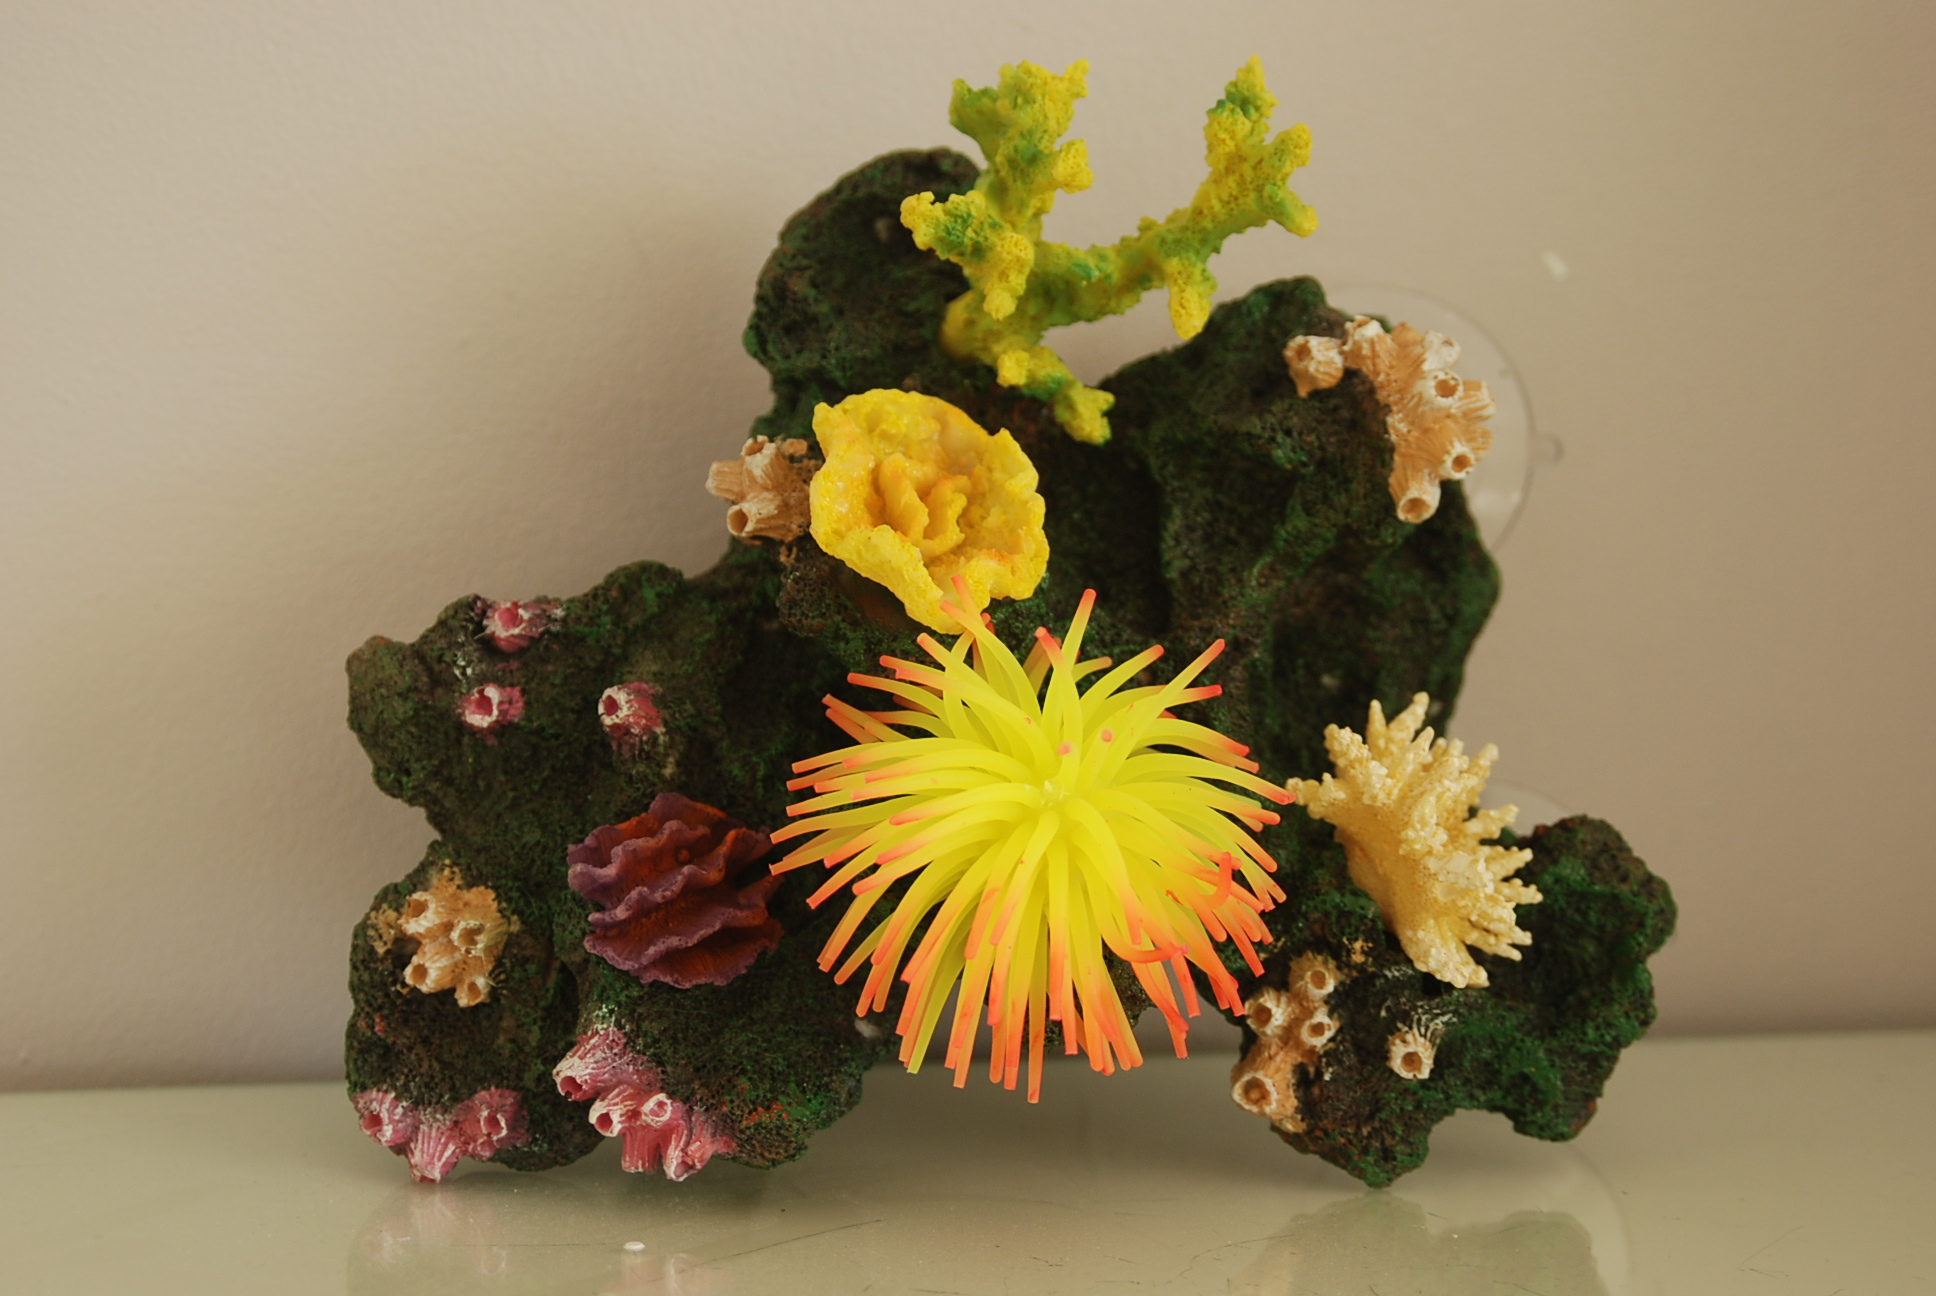 Aquarium reef and coral ornaments for Aquarium coral decoration